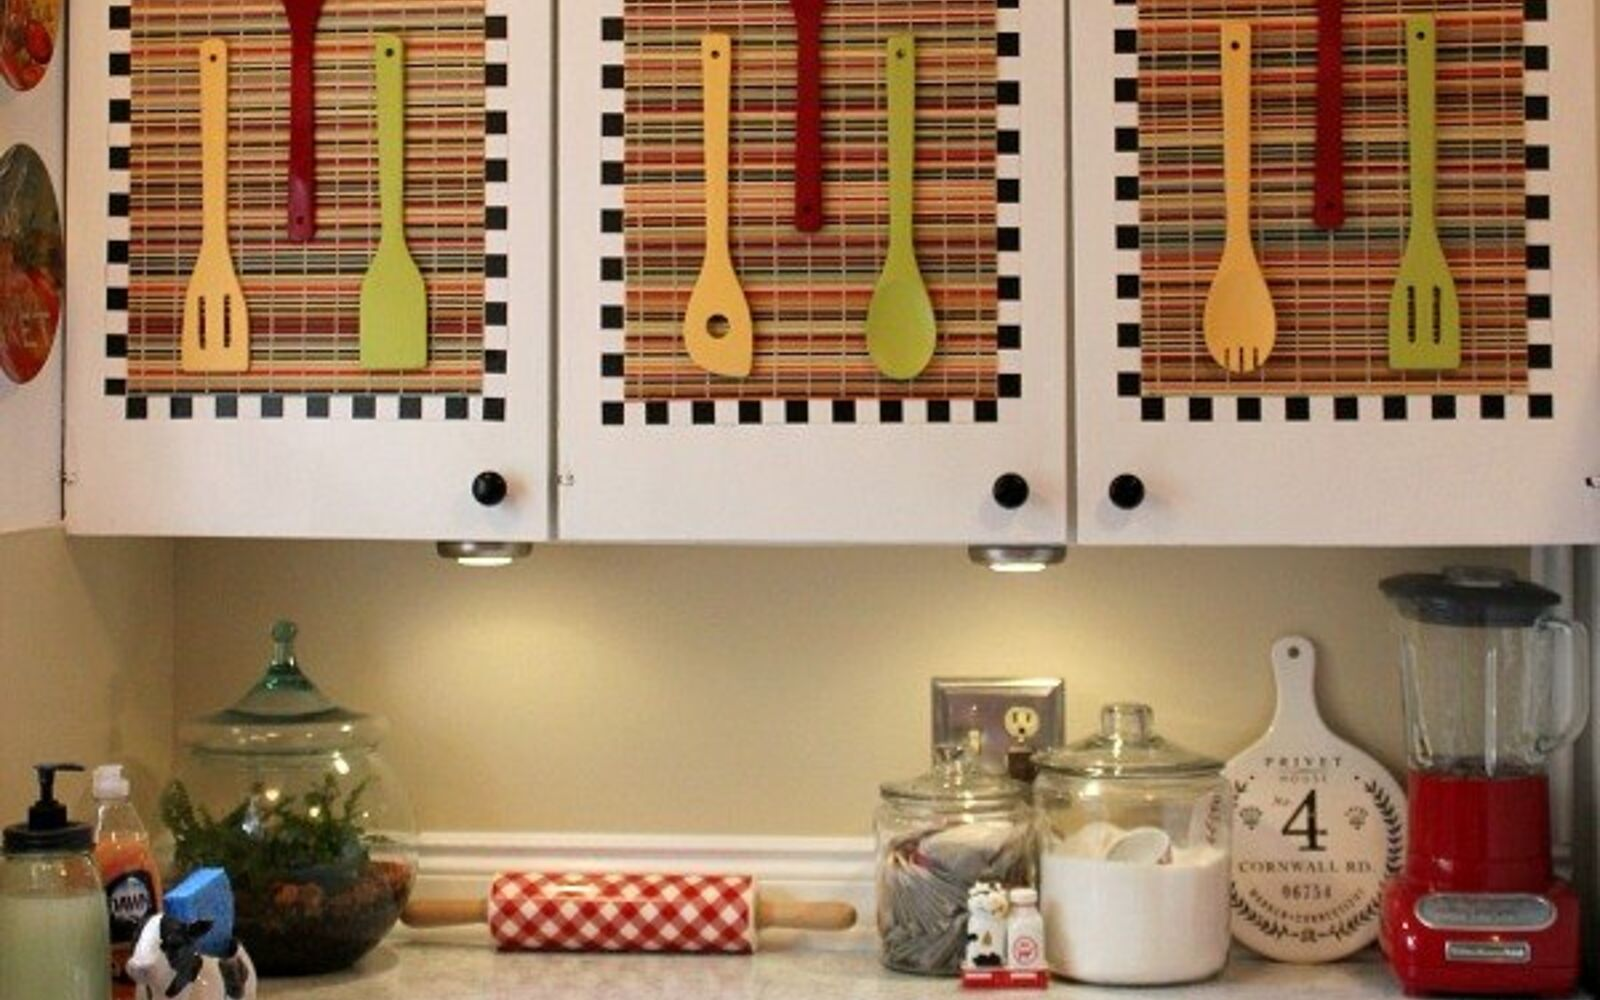 s 31 update ideas to make your kitchen look fabulous, Tack on placements and colorful utensils